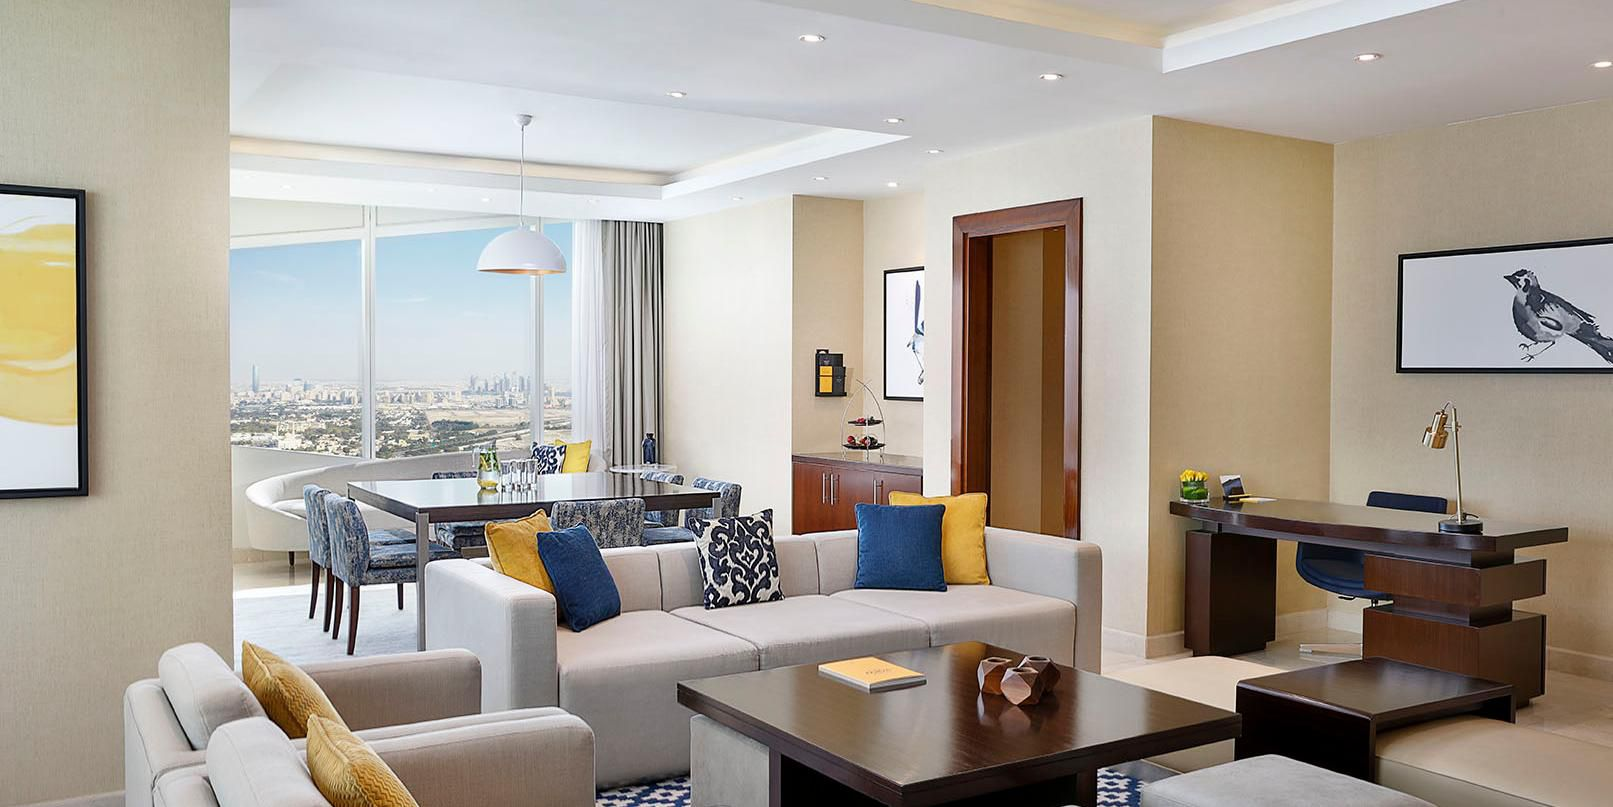 Ambassador Suite living room, with views of Sheikh Zayed Road